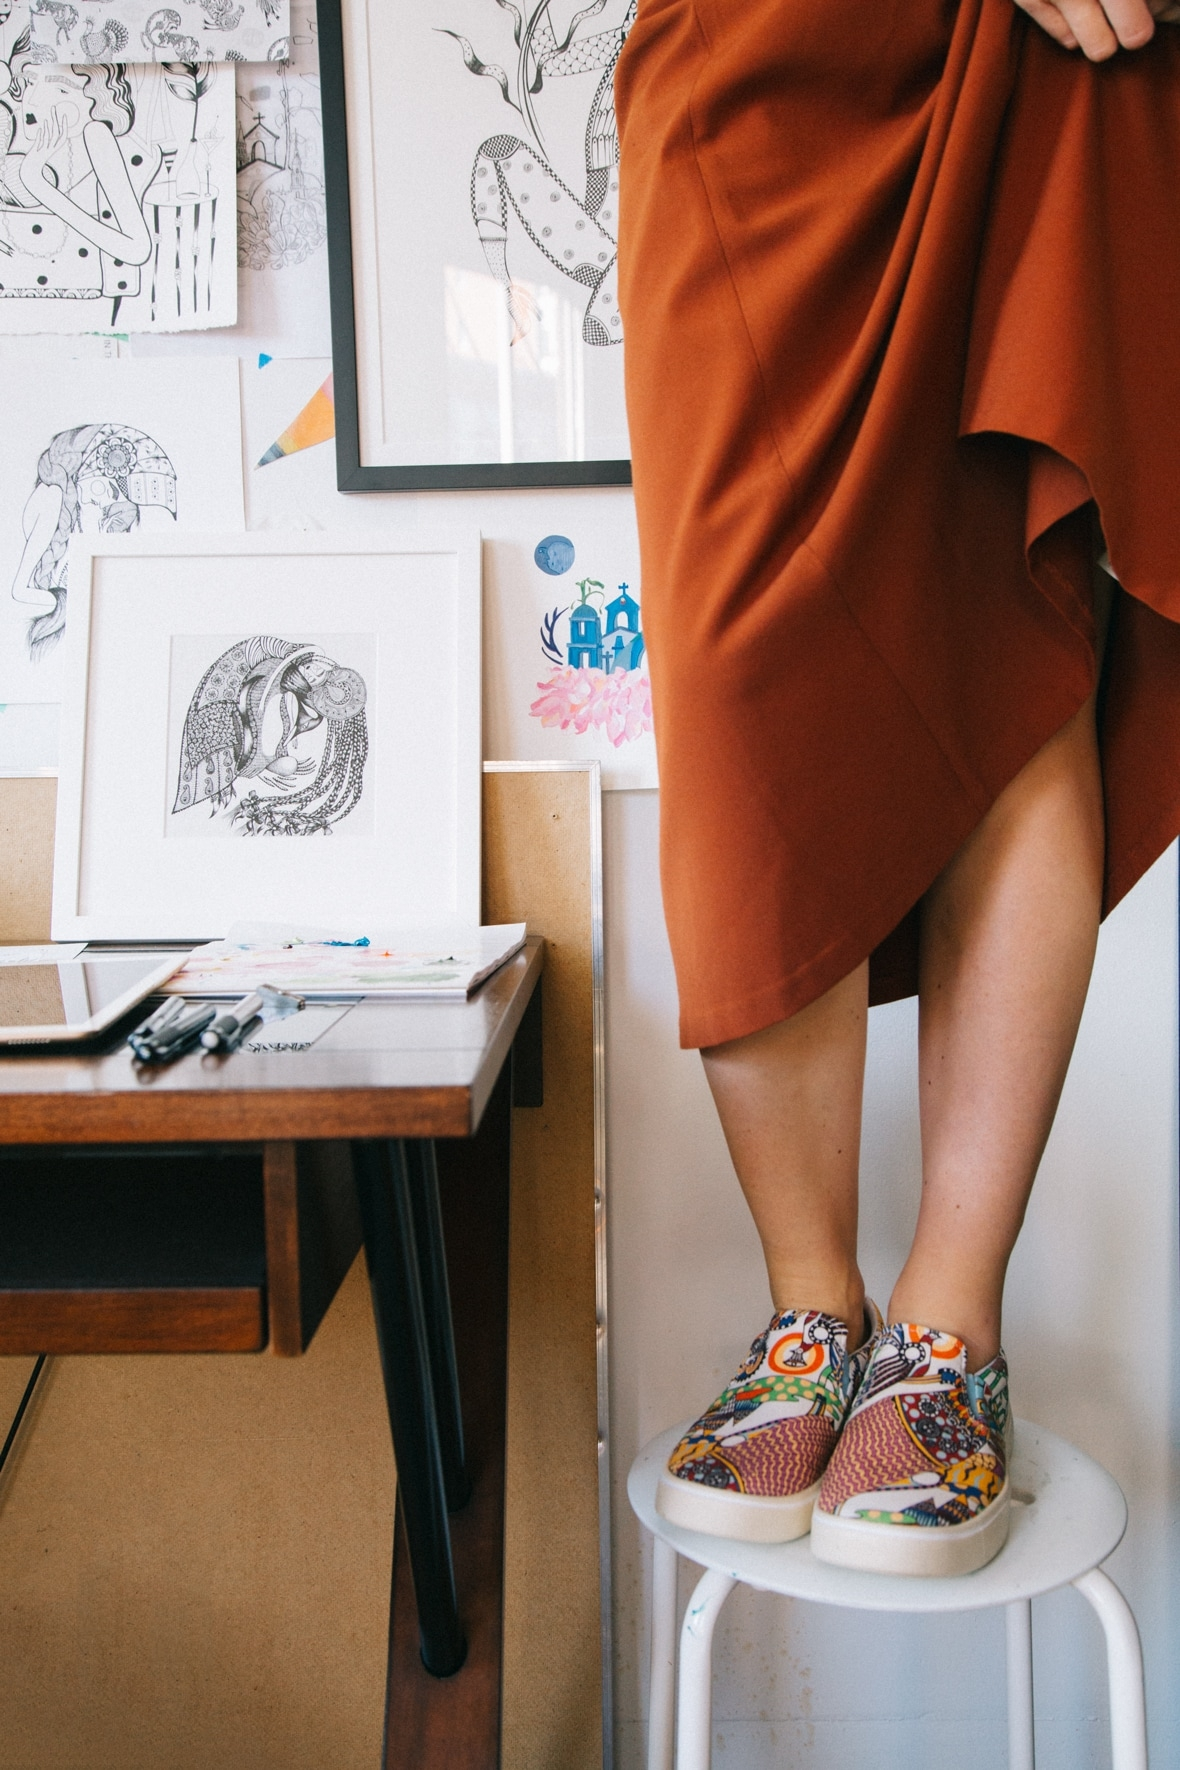 Ola Volo wearing the Native Shoes Ola Volo print collaboration shoes standing on a stool in her studio.